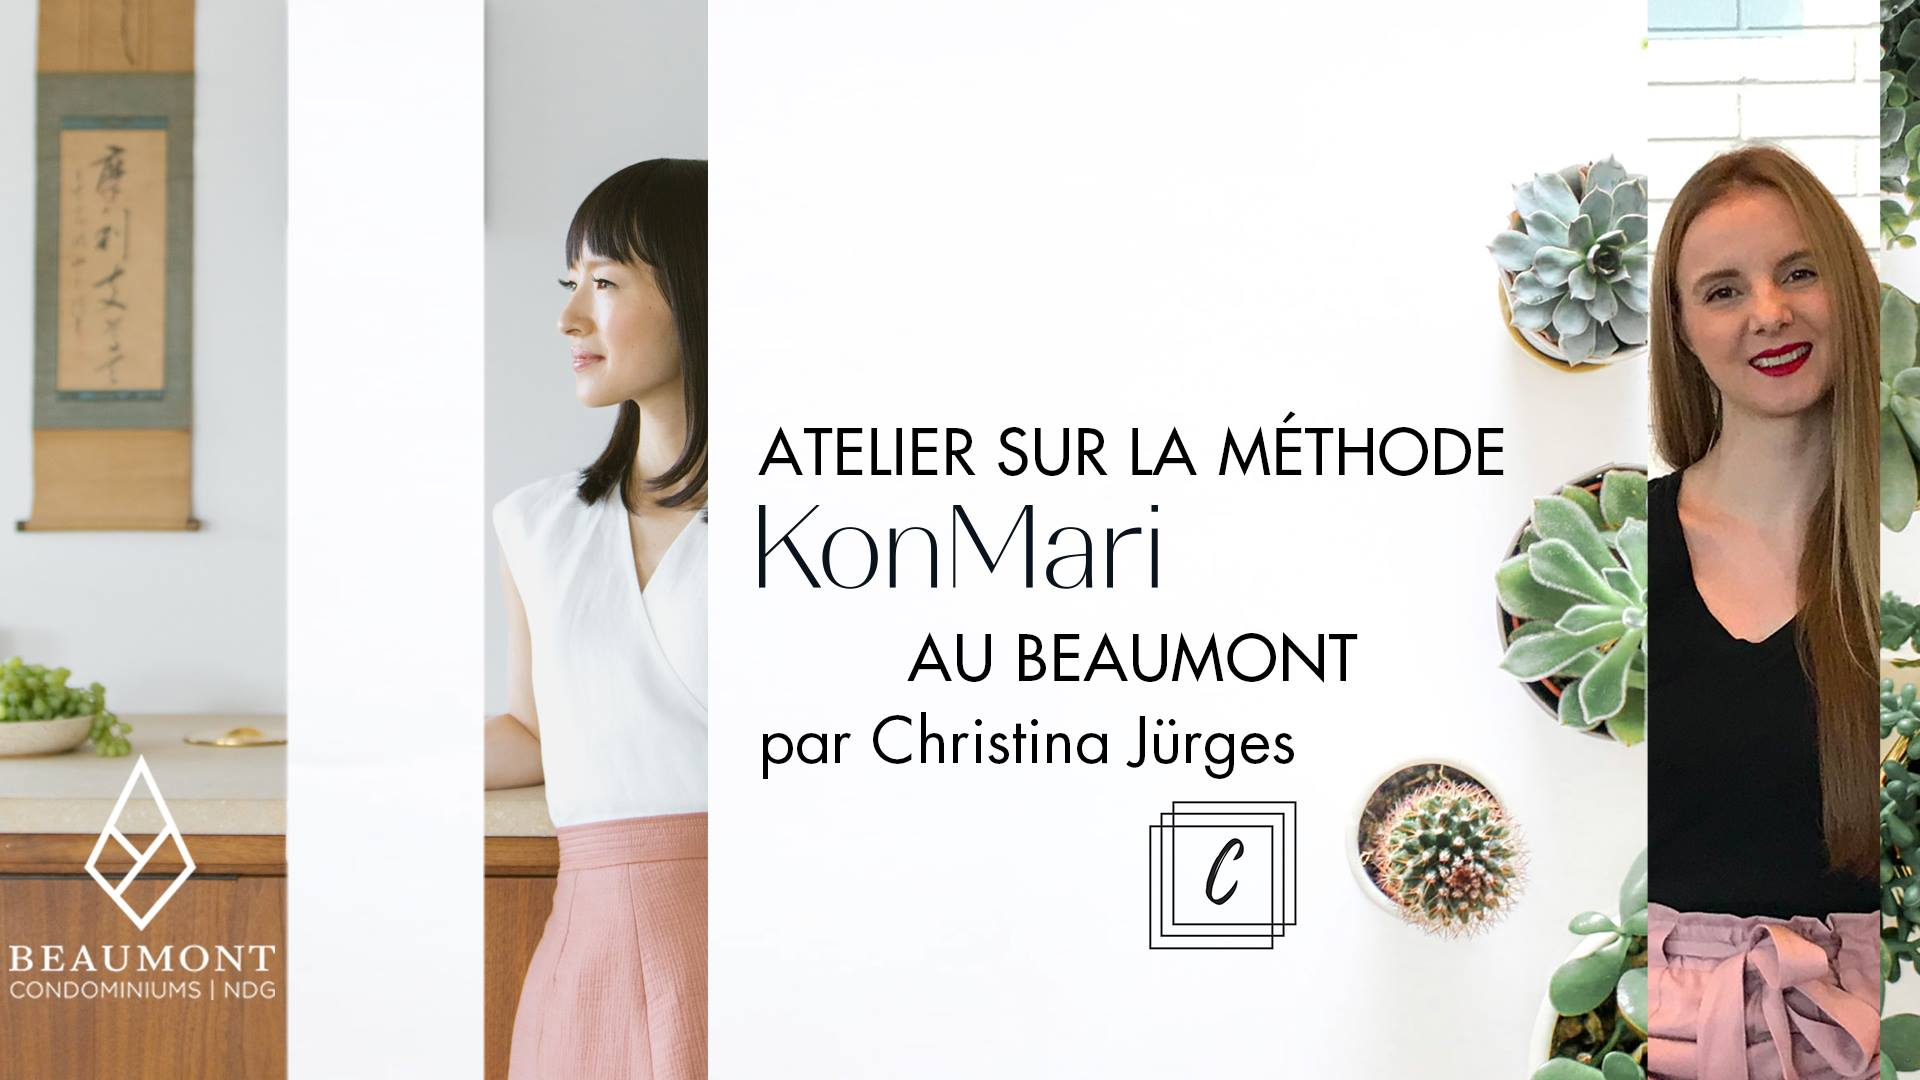 DevMcGill (Beaumont) - Workshop Focus: KonMari Method Coaching - how to create a space and life that spark joy